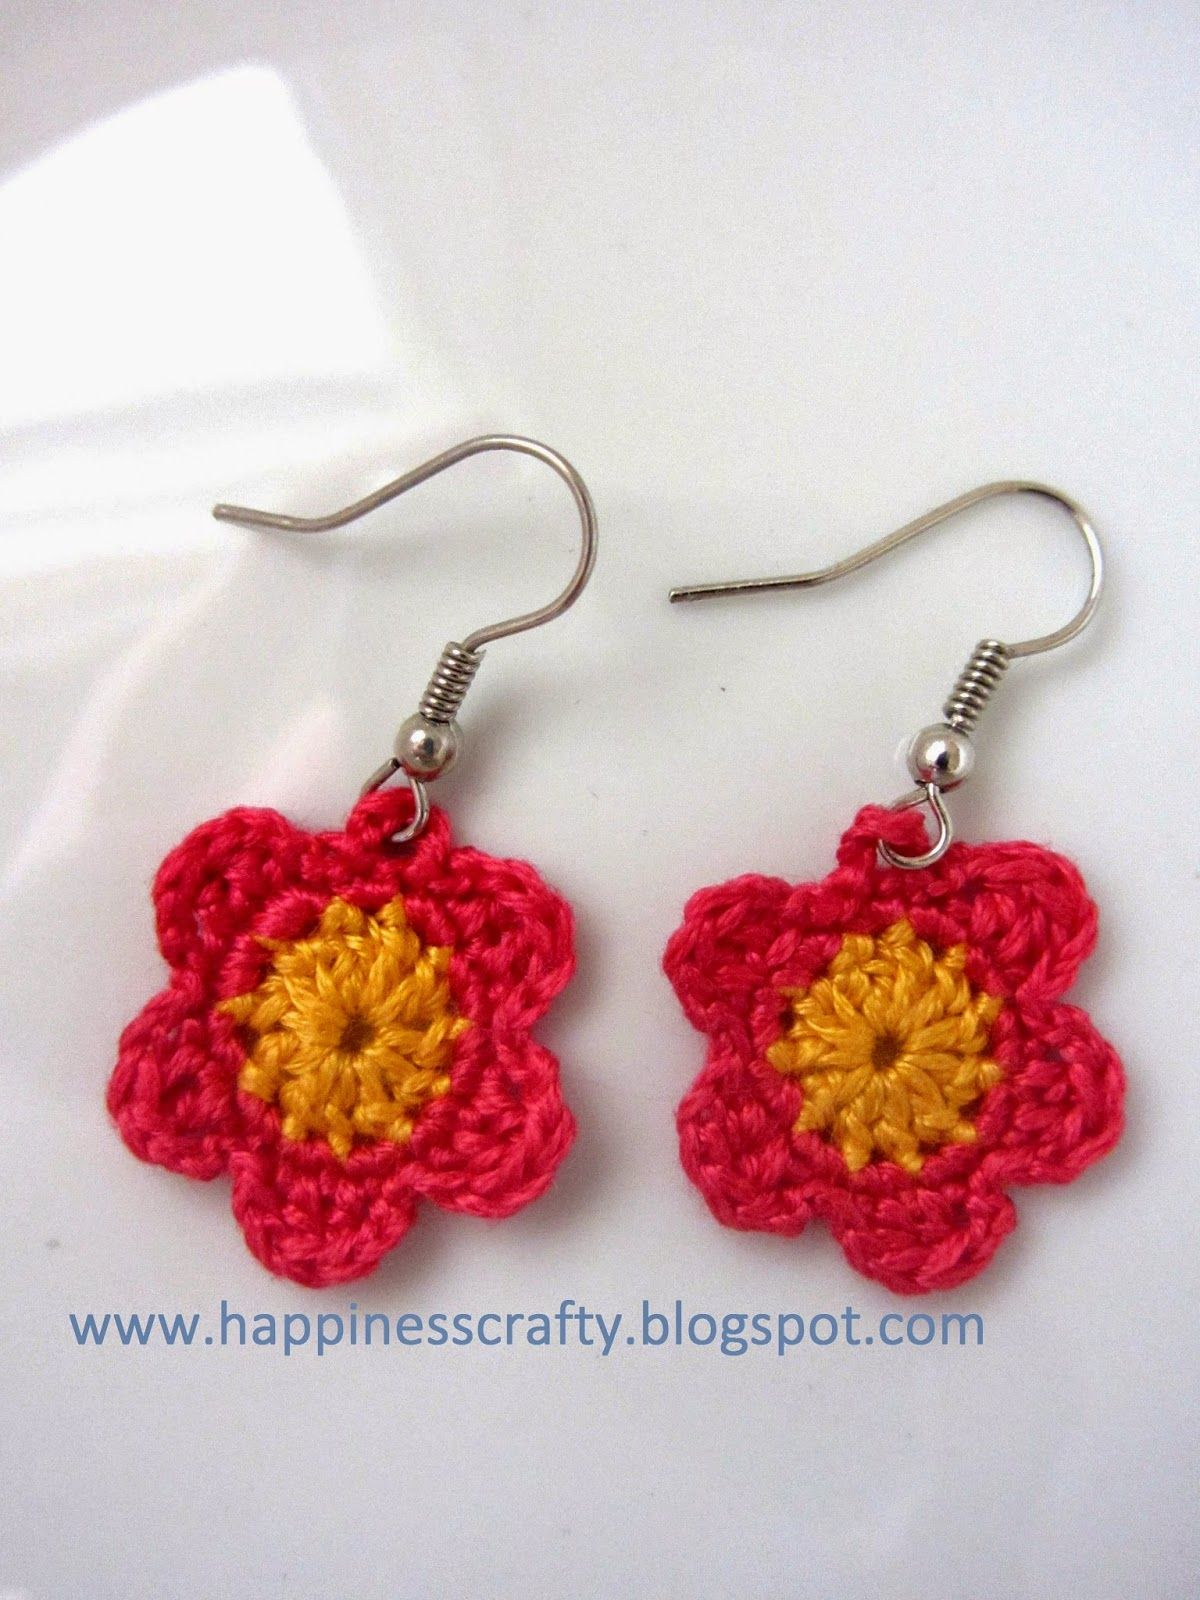 crochet flower earrings free pattern happiness crafty blumen h keln mamas kram und. Black Bedroom Furniture Sets. Home Design Ideas